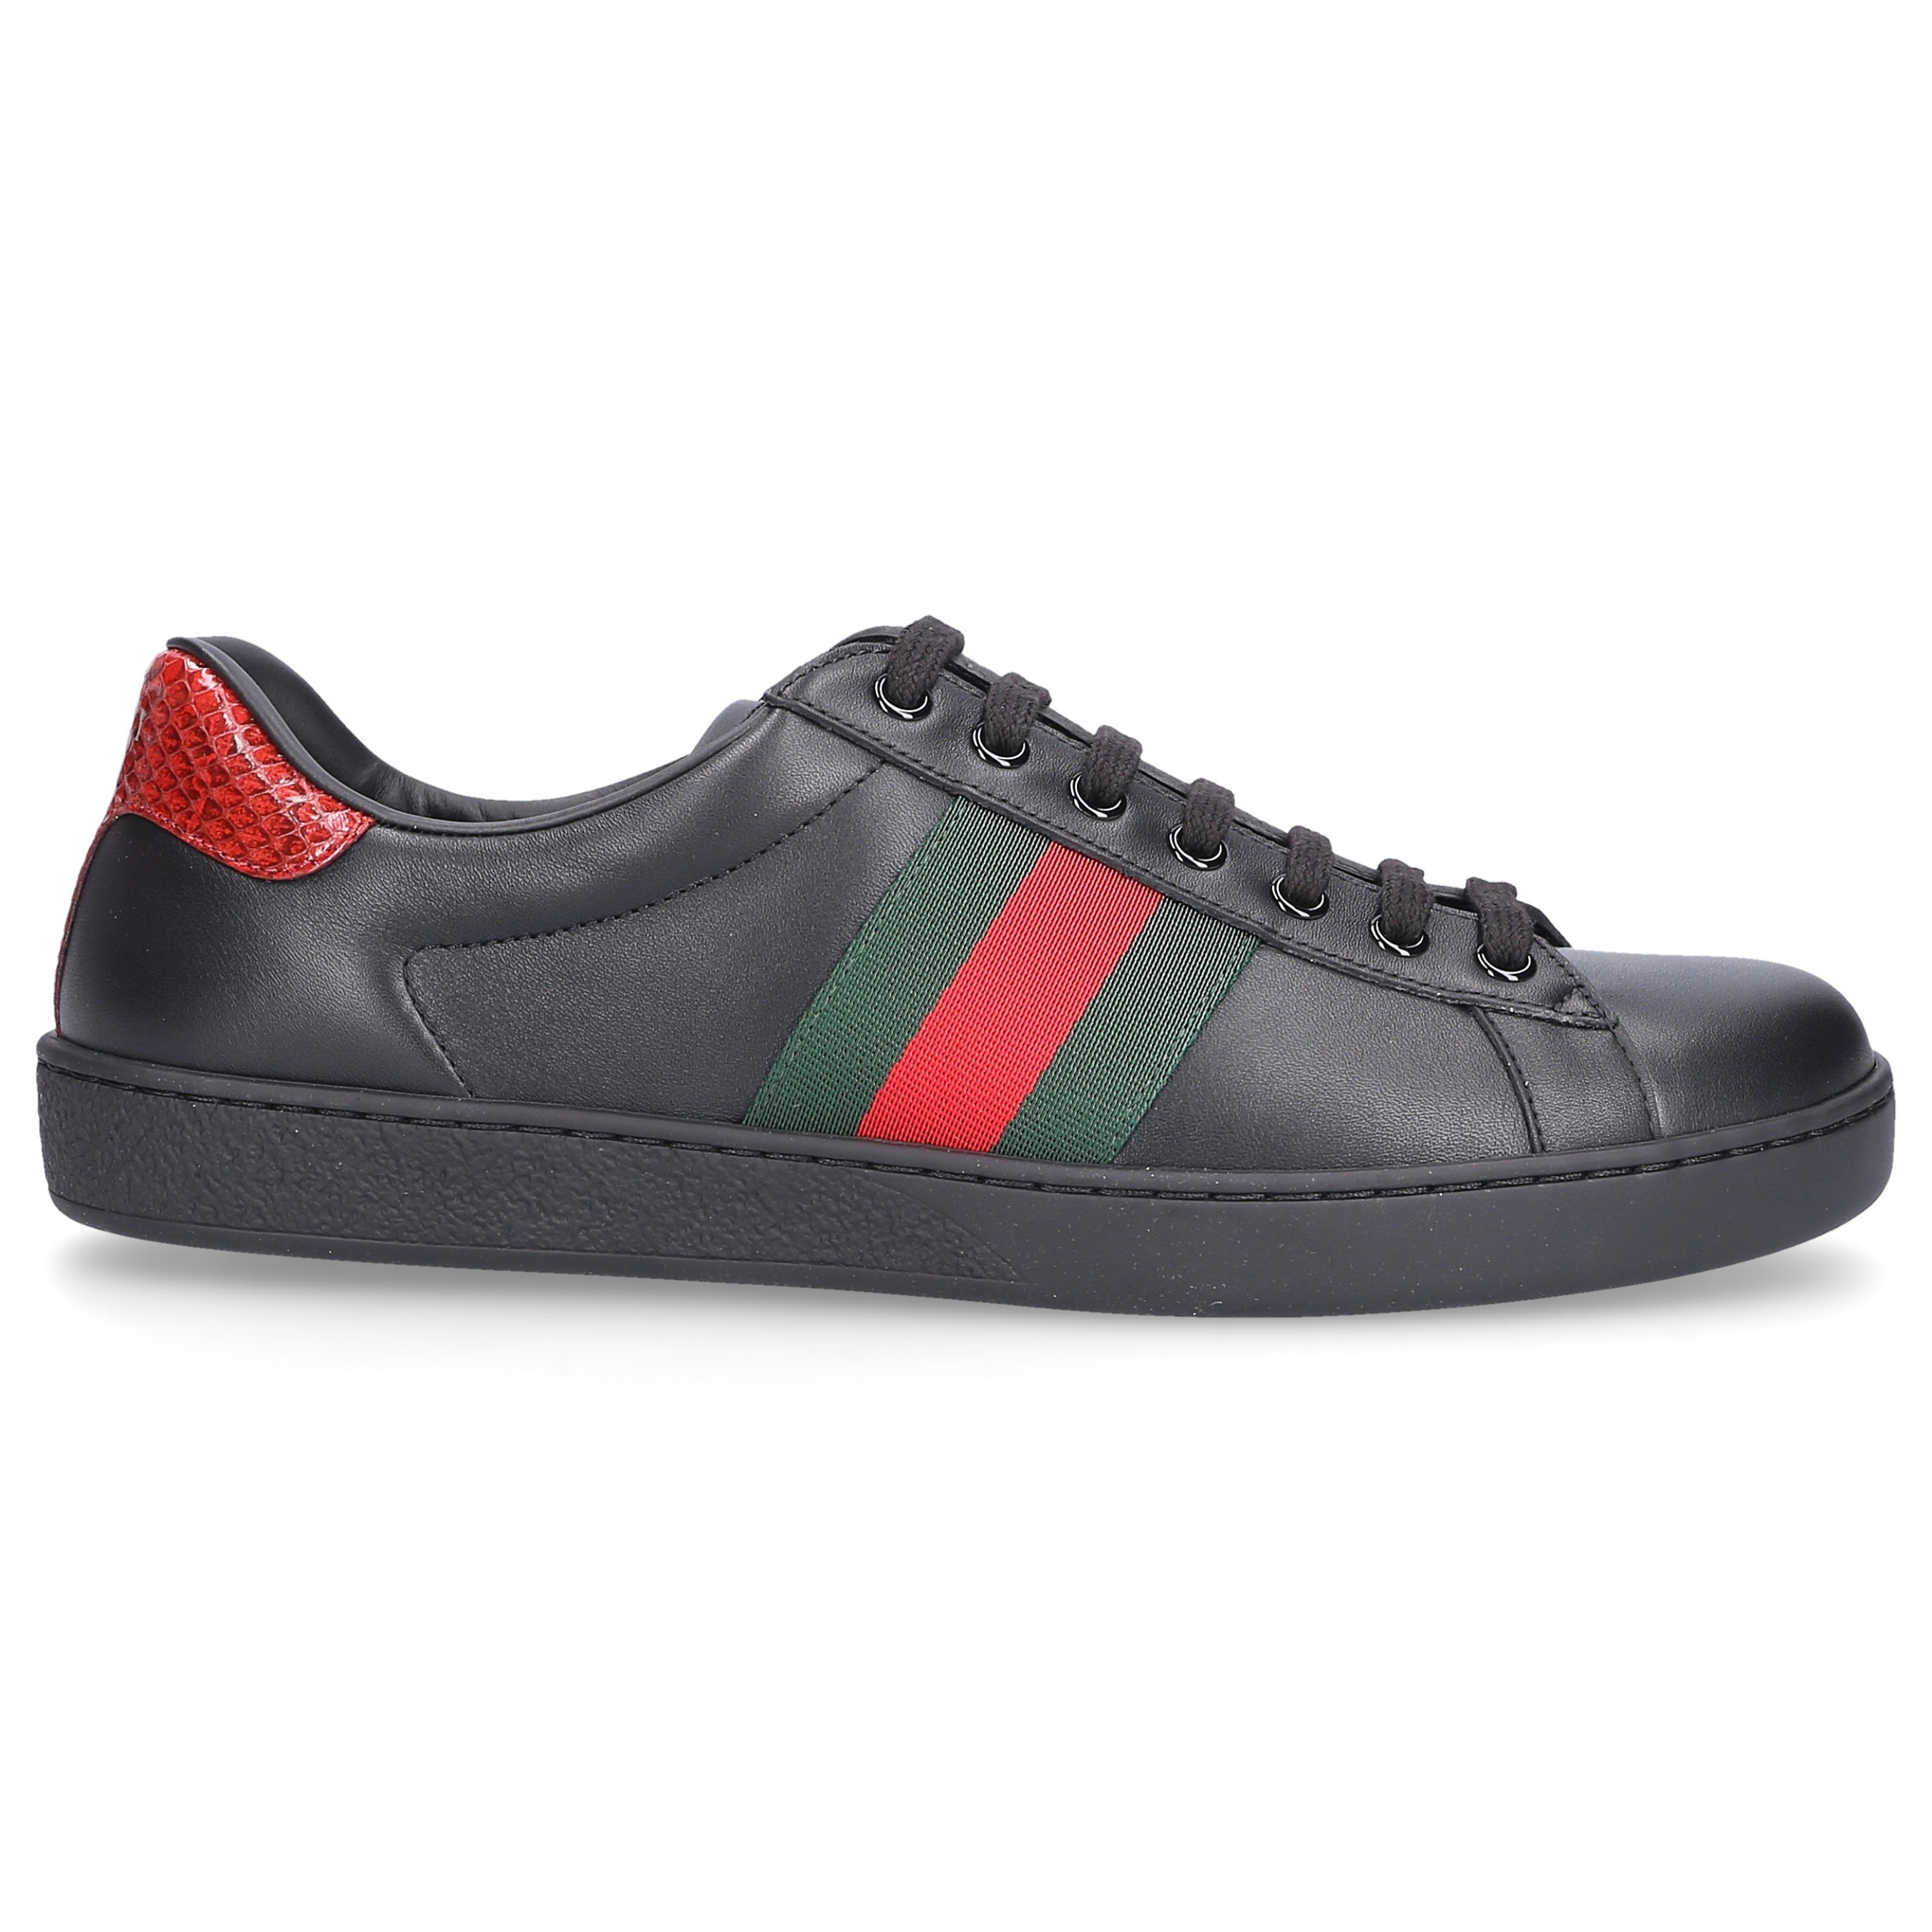 Gucci Sneakers Black Ace